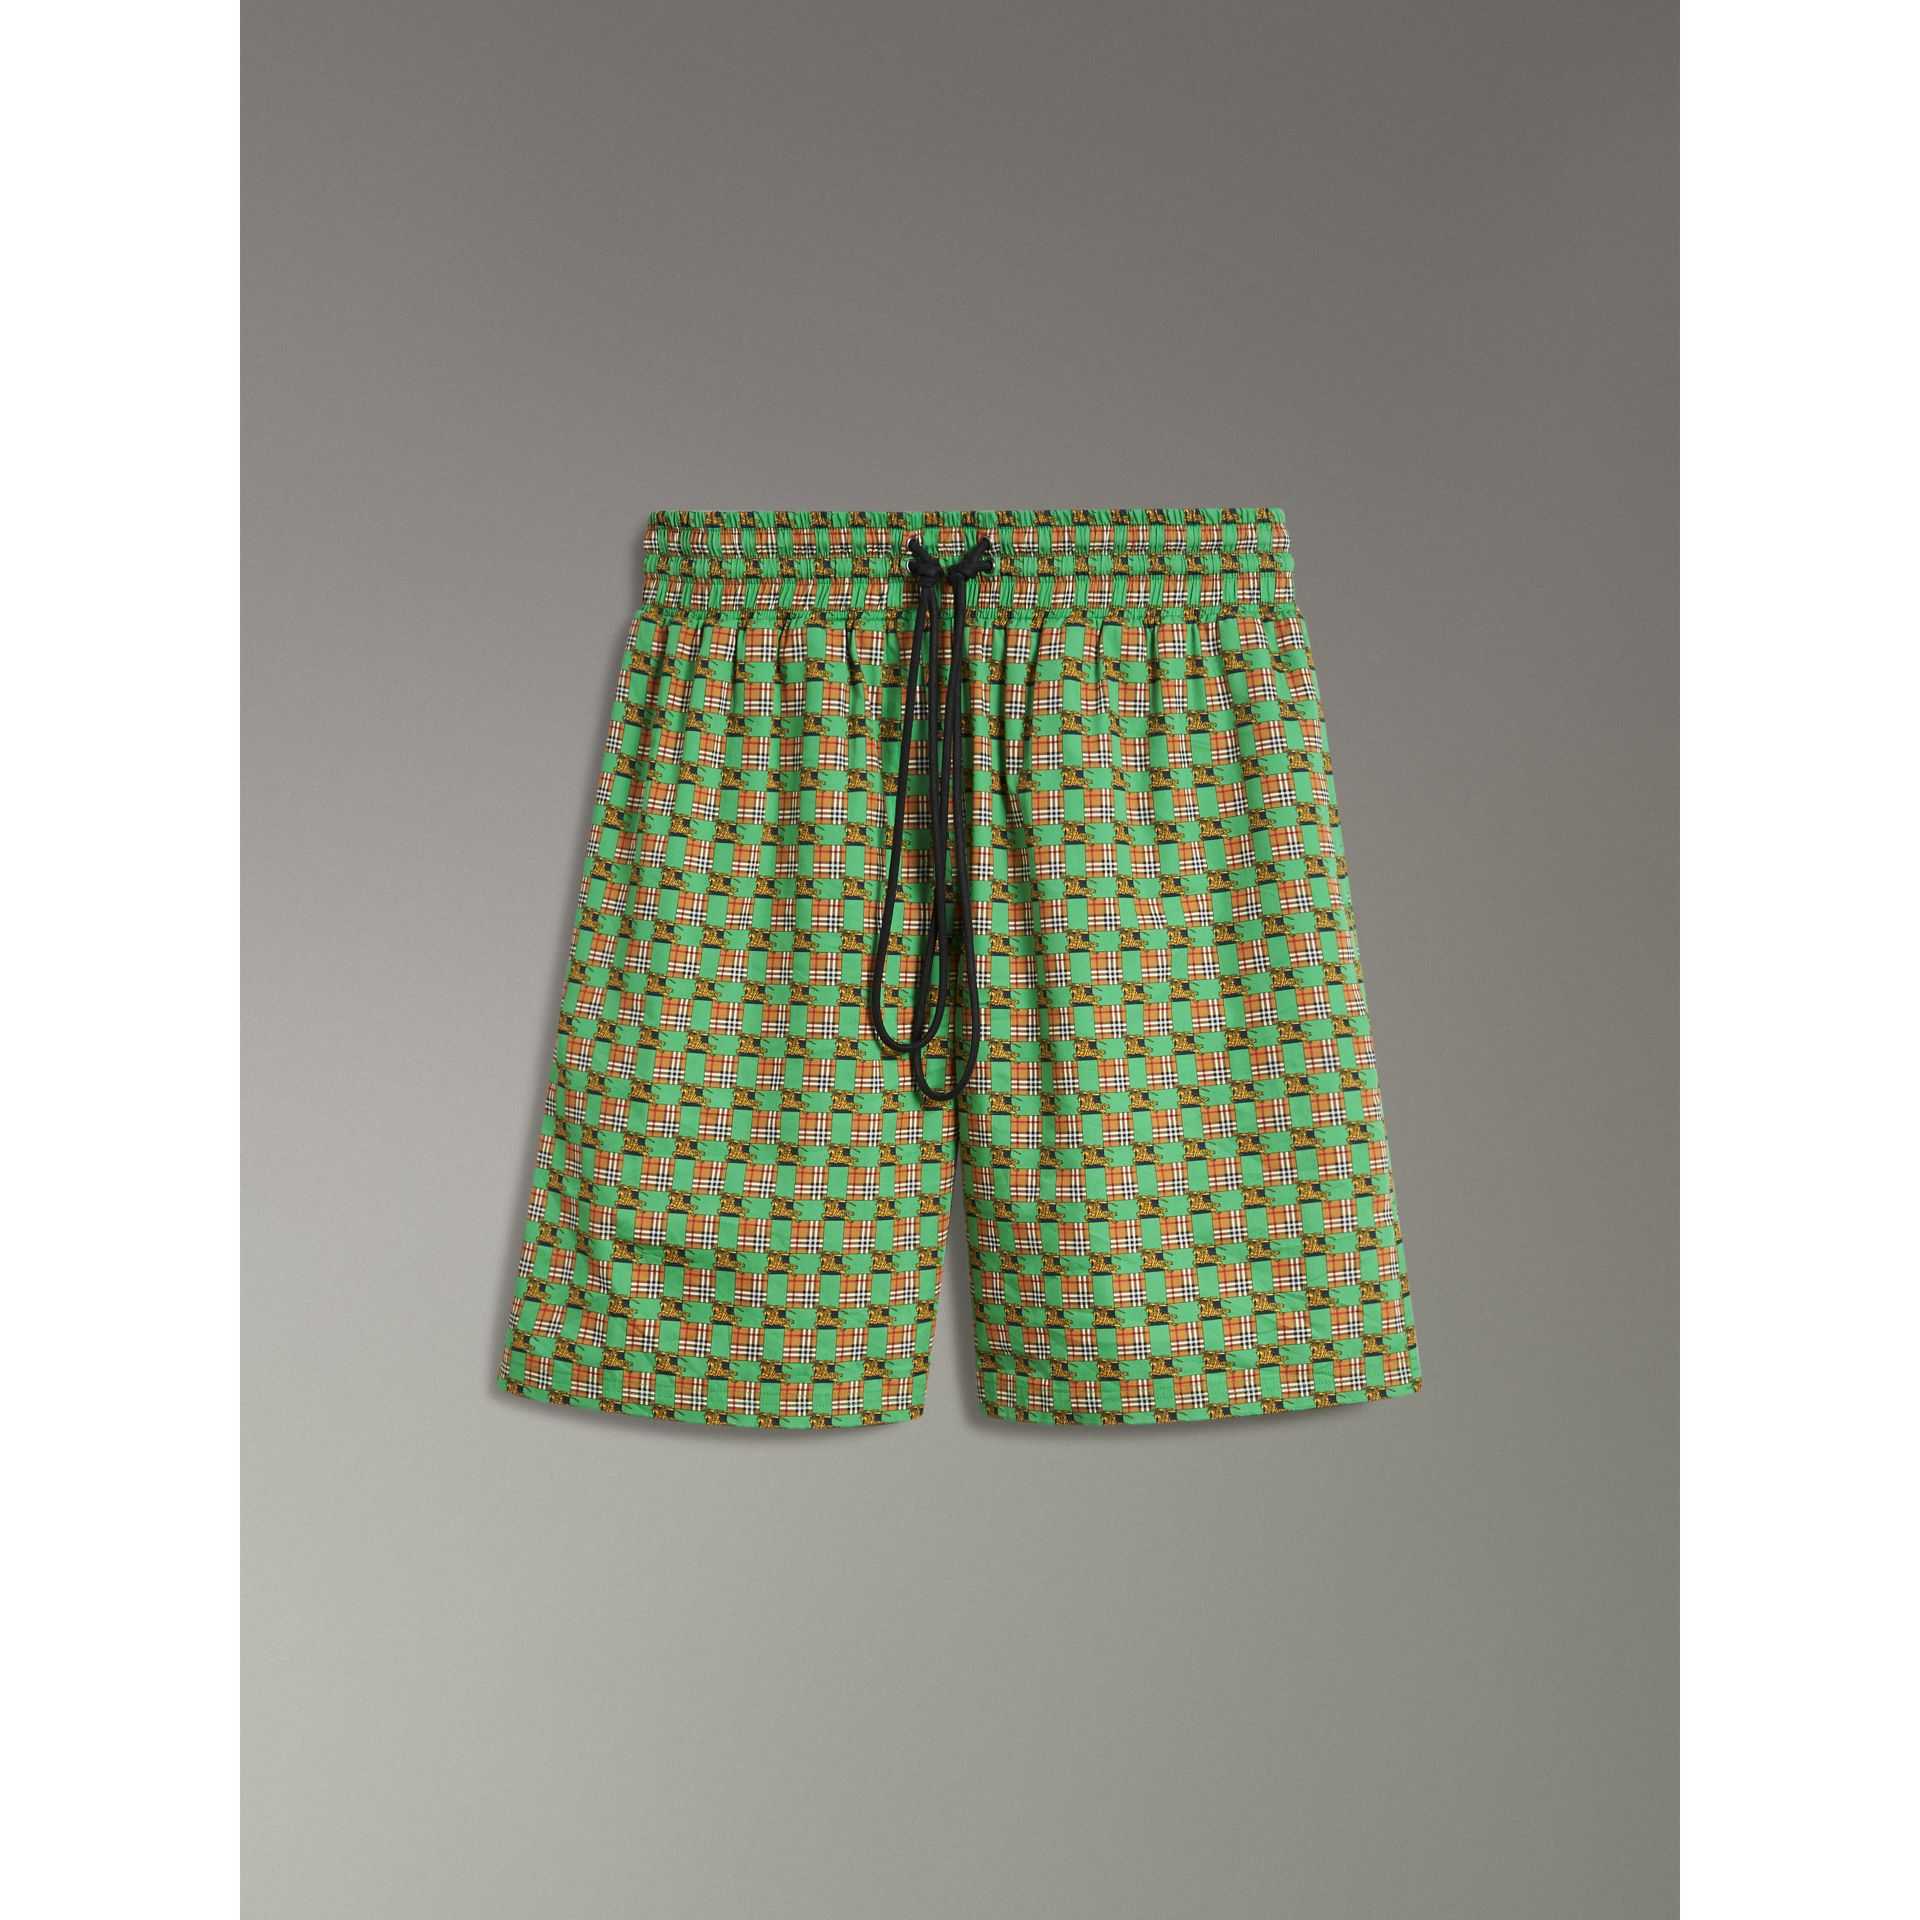 Tiled Archive Print Cotton Drawcord Shorts in Dark Forest Green - Women | Burberry United States - gallery image 3